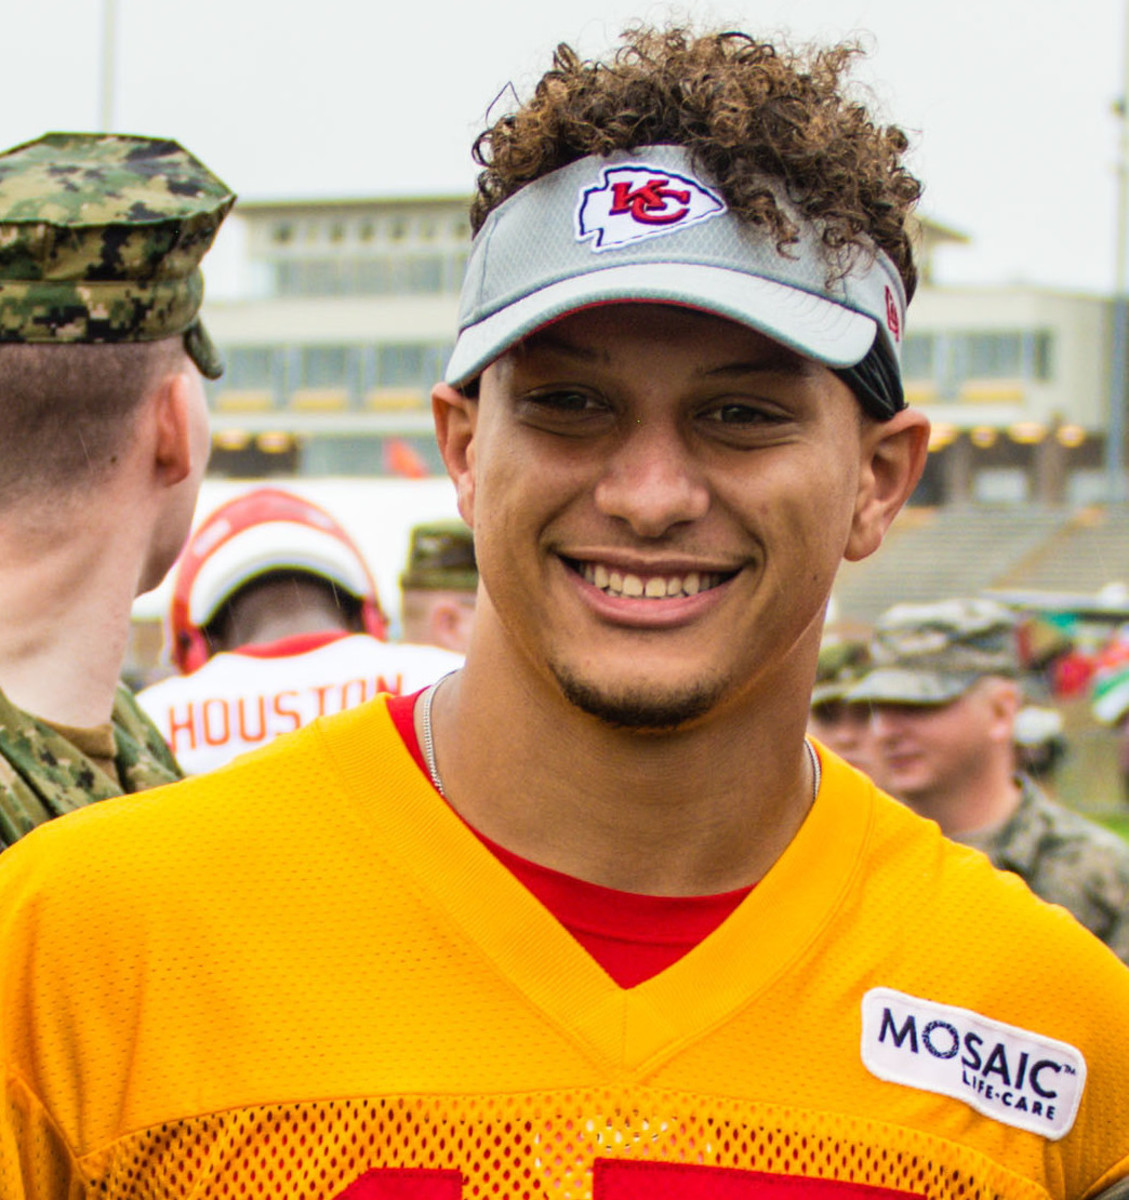 Patrick Mahomes has led two teams to a Super Bowl, but was drafted as a baseball player in 2014.